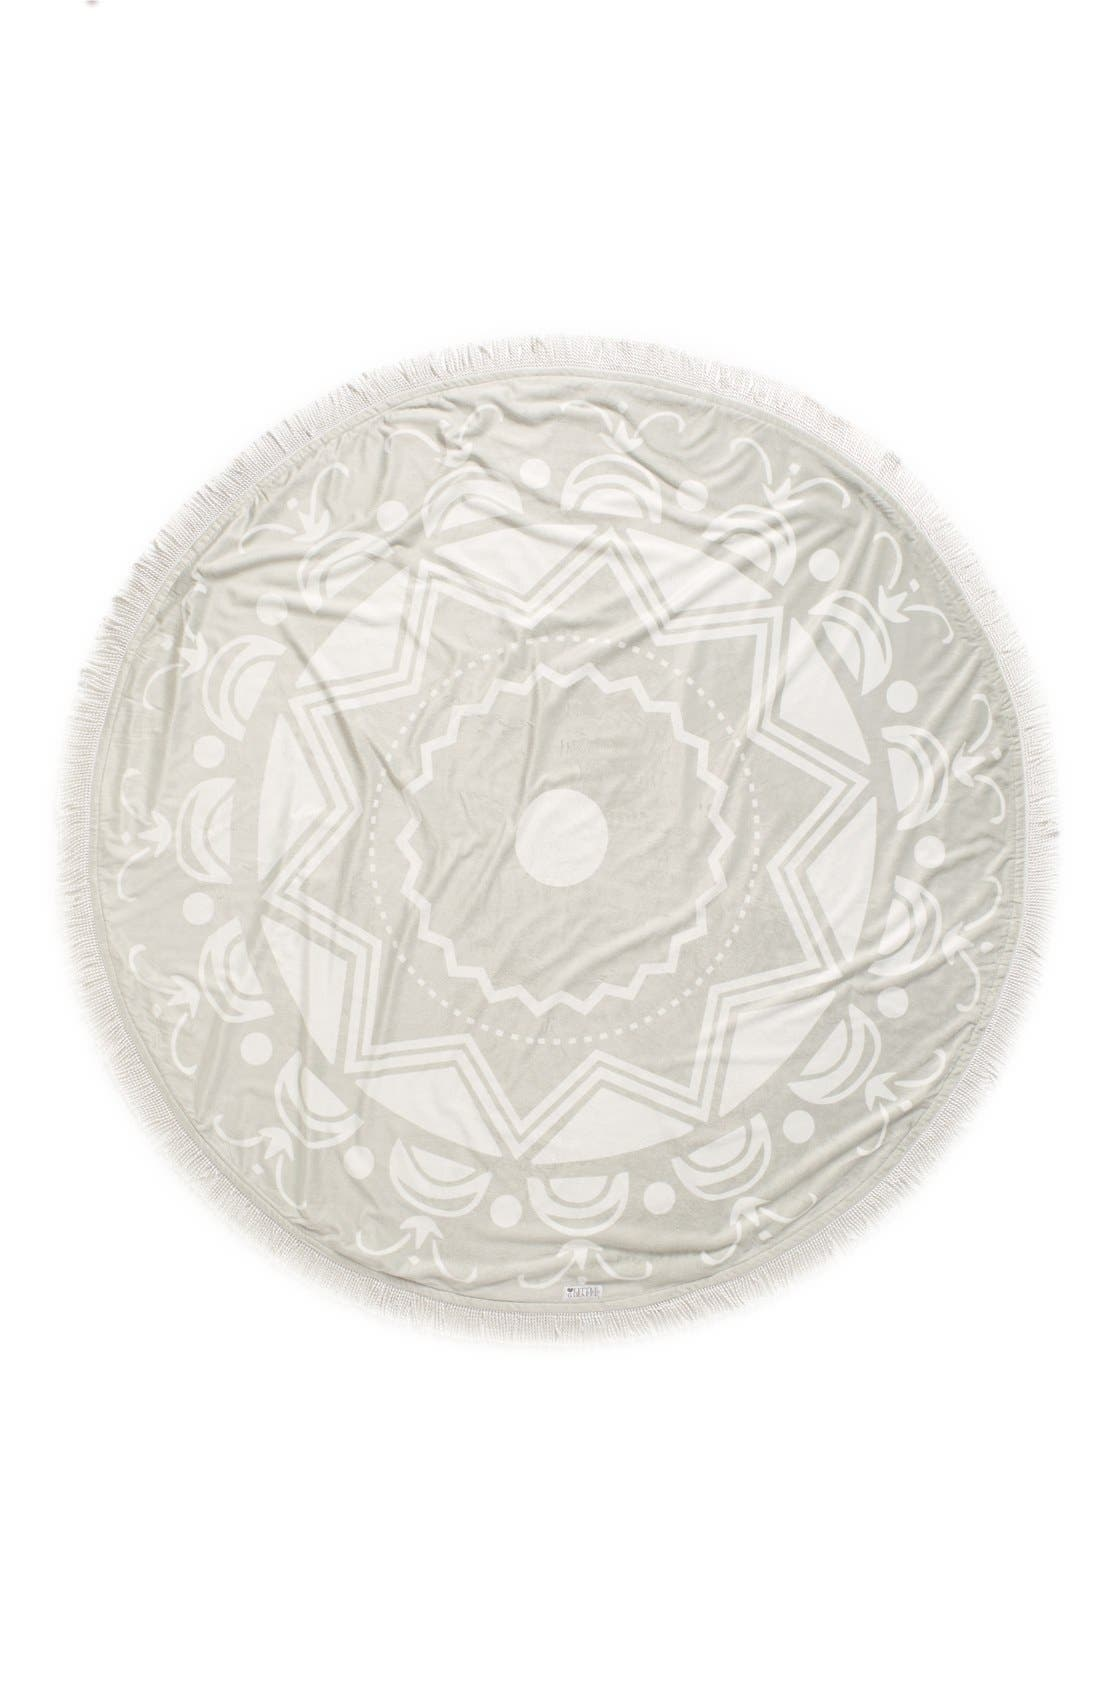 Bliss<sup>™</sup> Round Blanket,                             Alternate thumbnail 4, color,